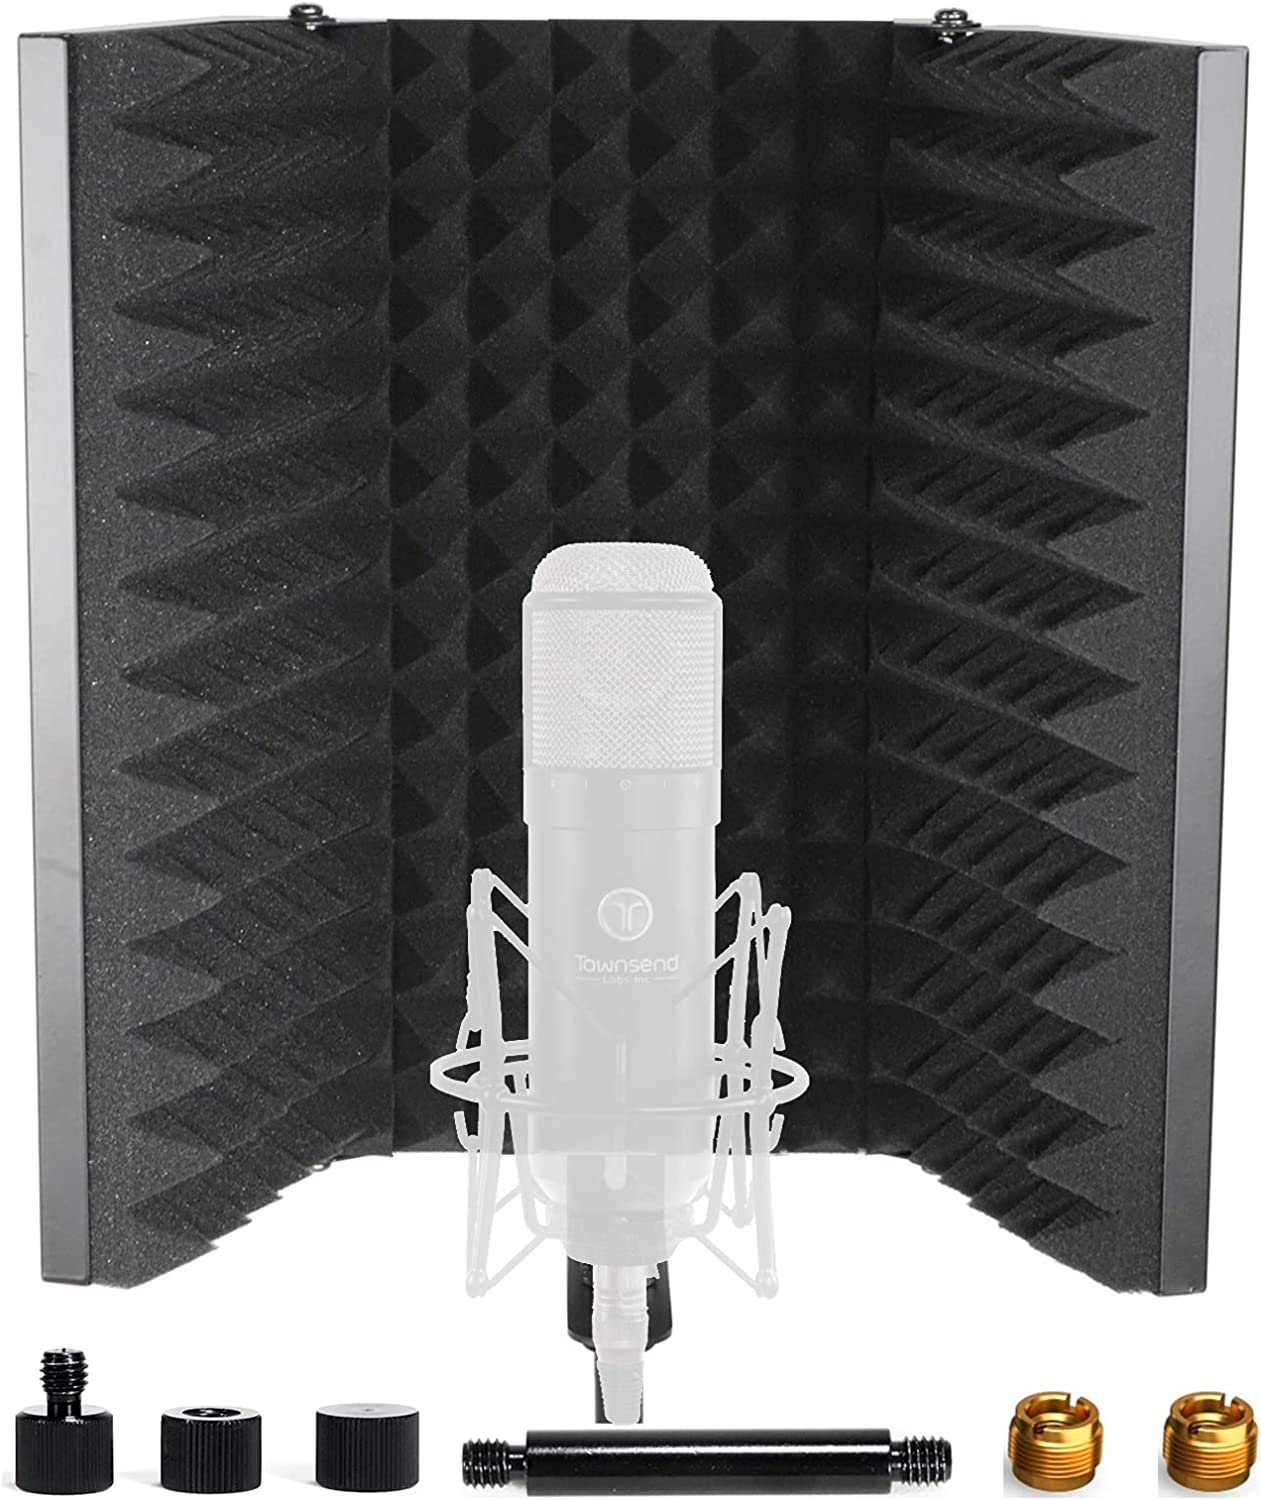 Studio Microphone Isolation Shield, Pop Filter, Metal Sound Proof Panels, High Density Absorbing Foam, Acoustic Treatment for Blue Yeti Condenser Mic Music Recording Vocal Booth Podcast Equipment